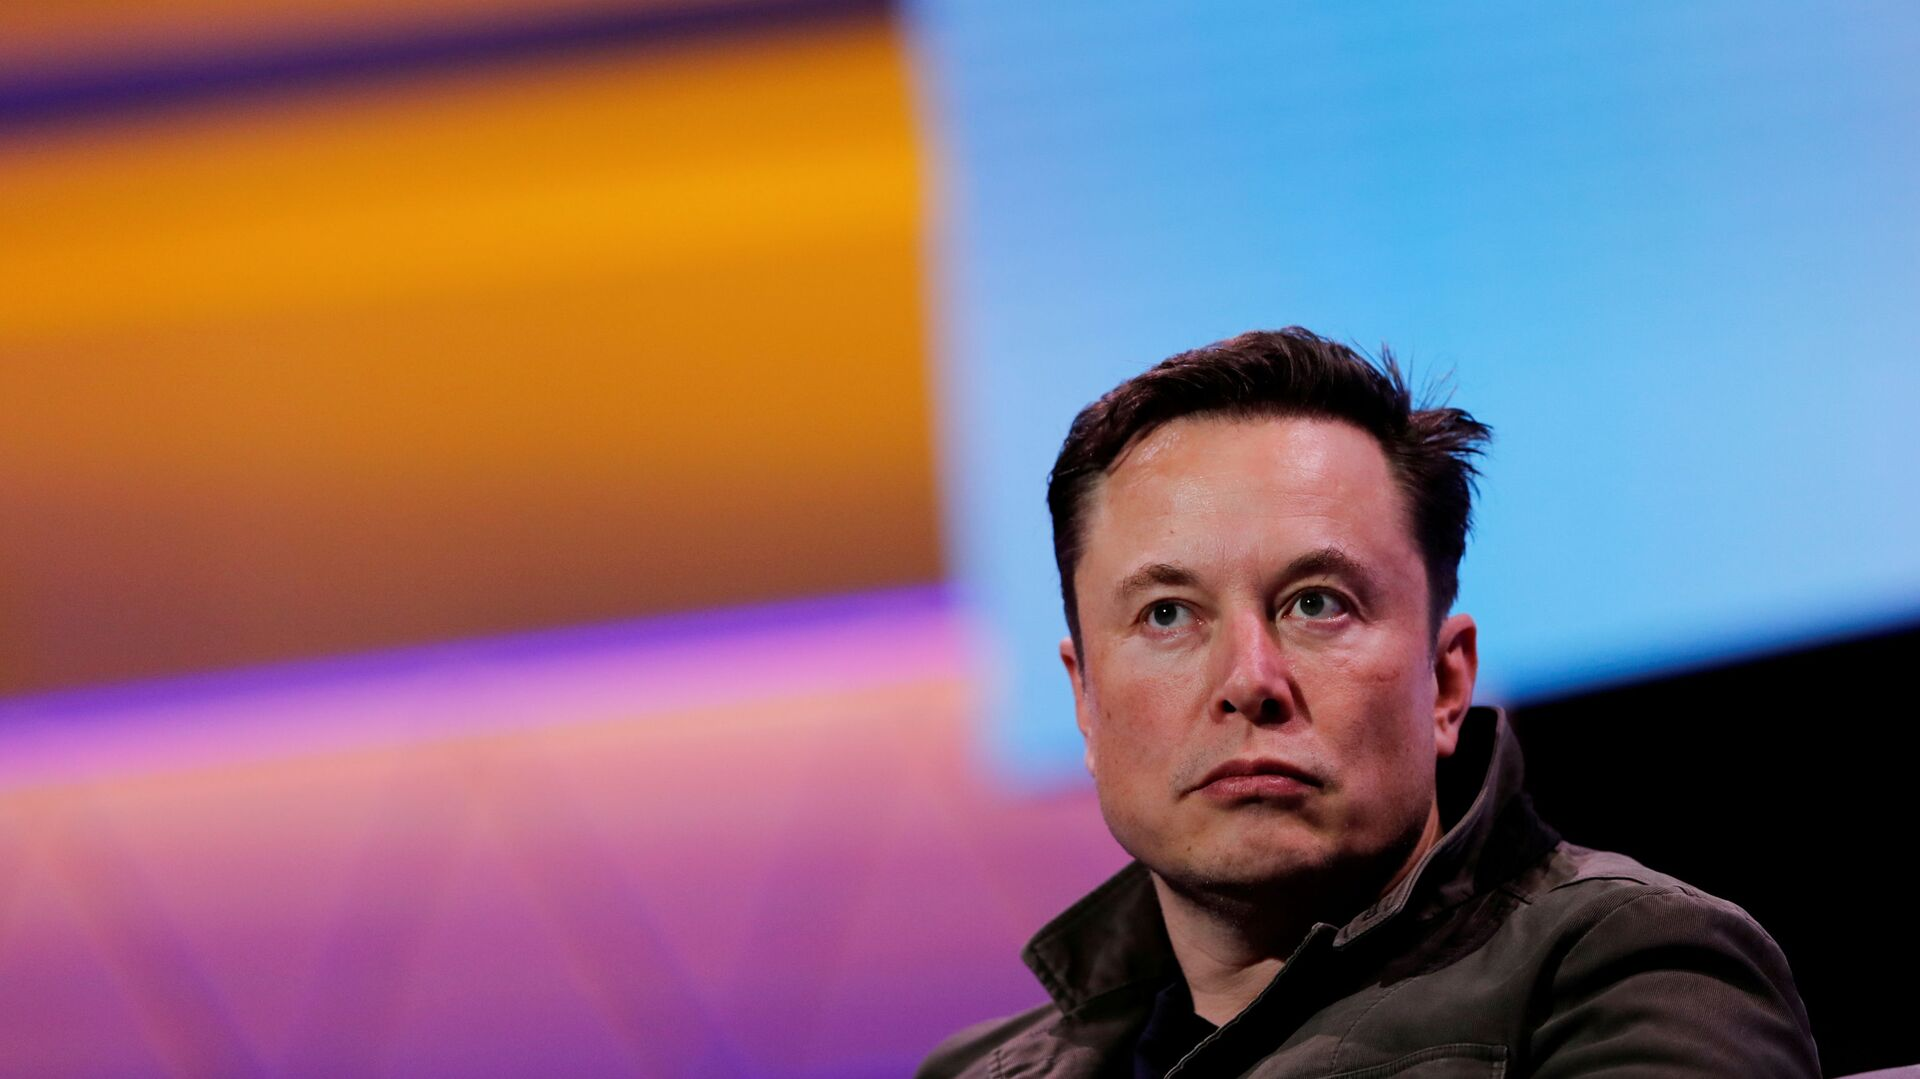 SpaceX owner and Tesla CEO Elon Musk speaks during a conversation with legendary game designer Todd Howard (not pictured) at the E3 gaming convention in Los Angeles, California, U.S., June 13, 2019 - Sputnik International, 1920, 03.08.2021